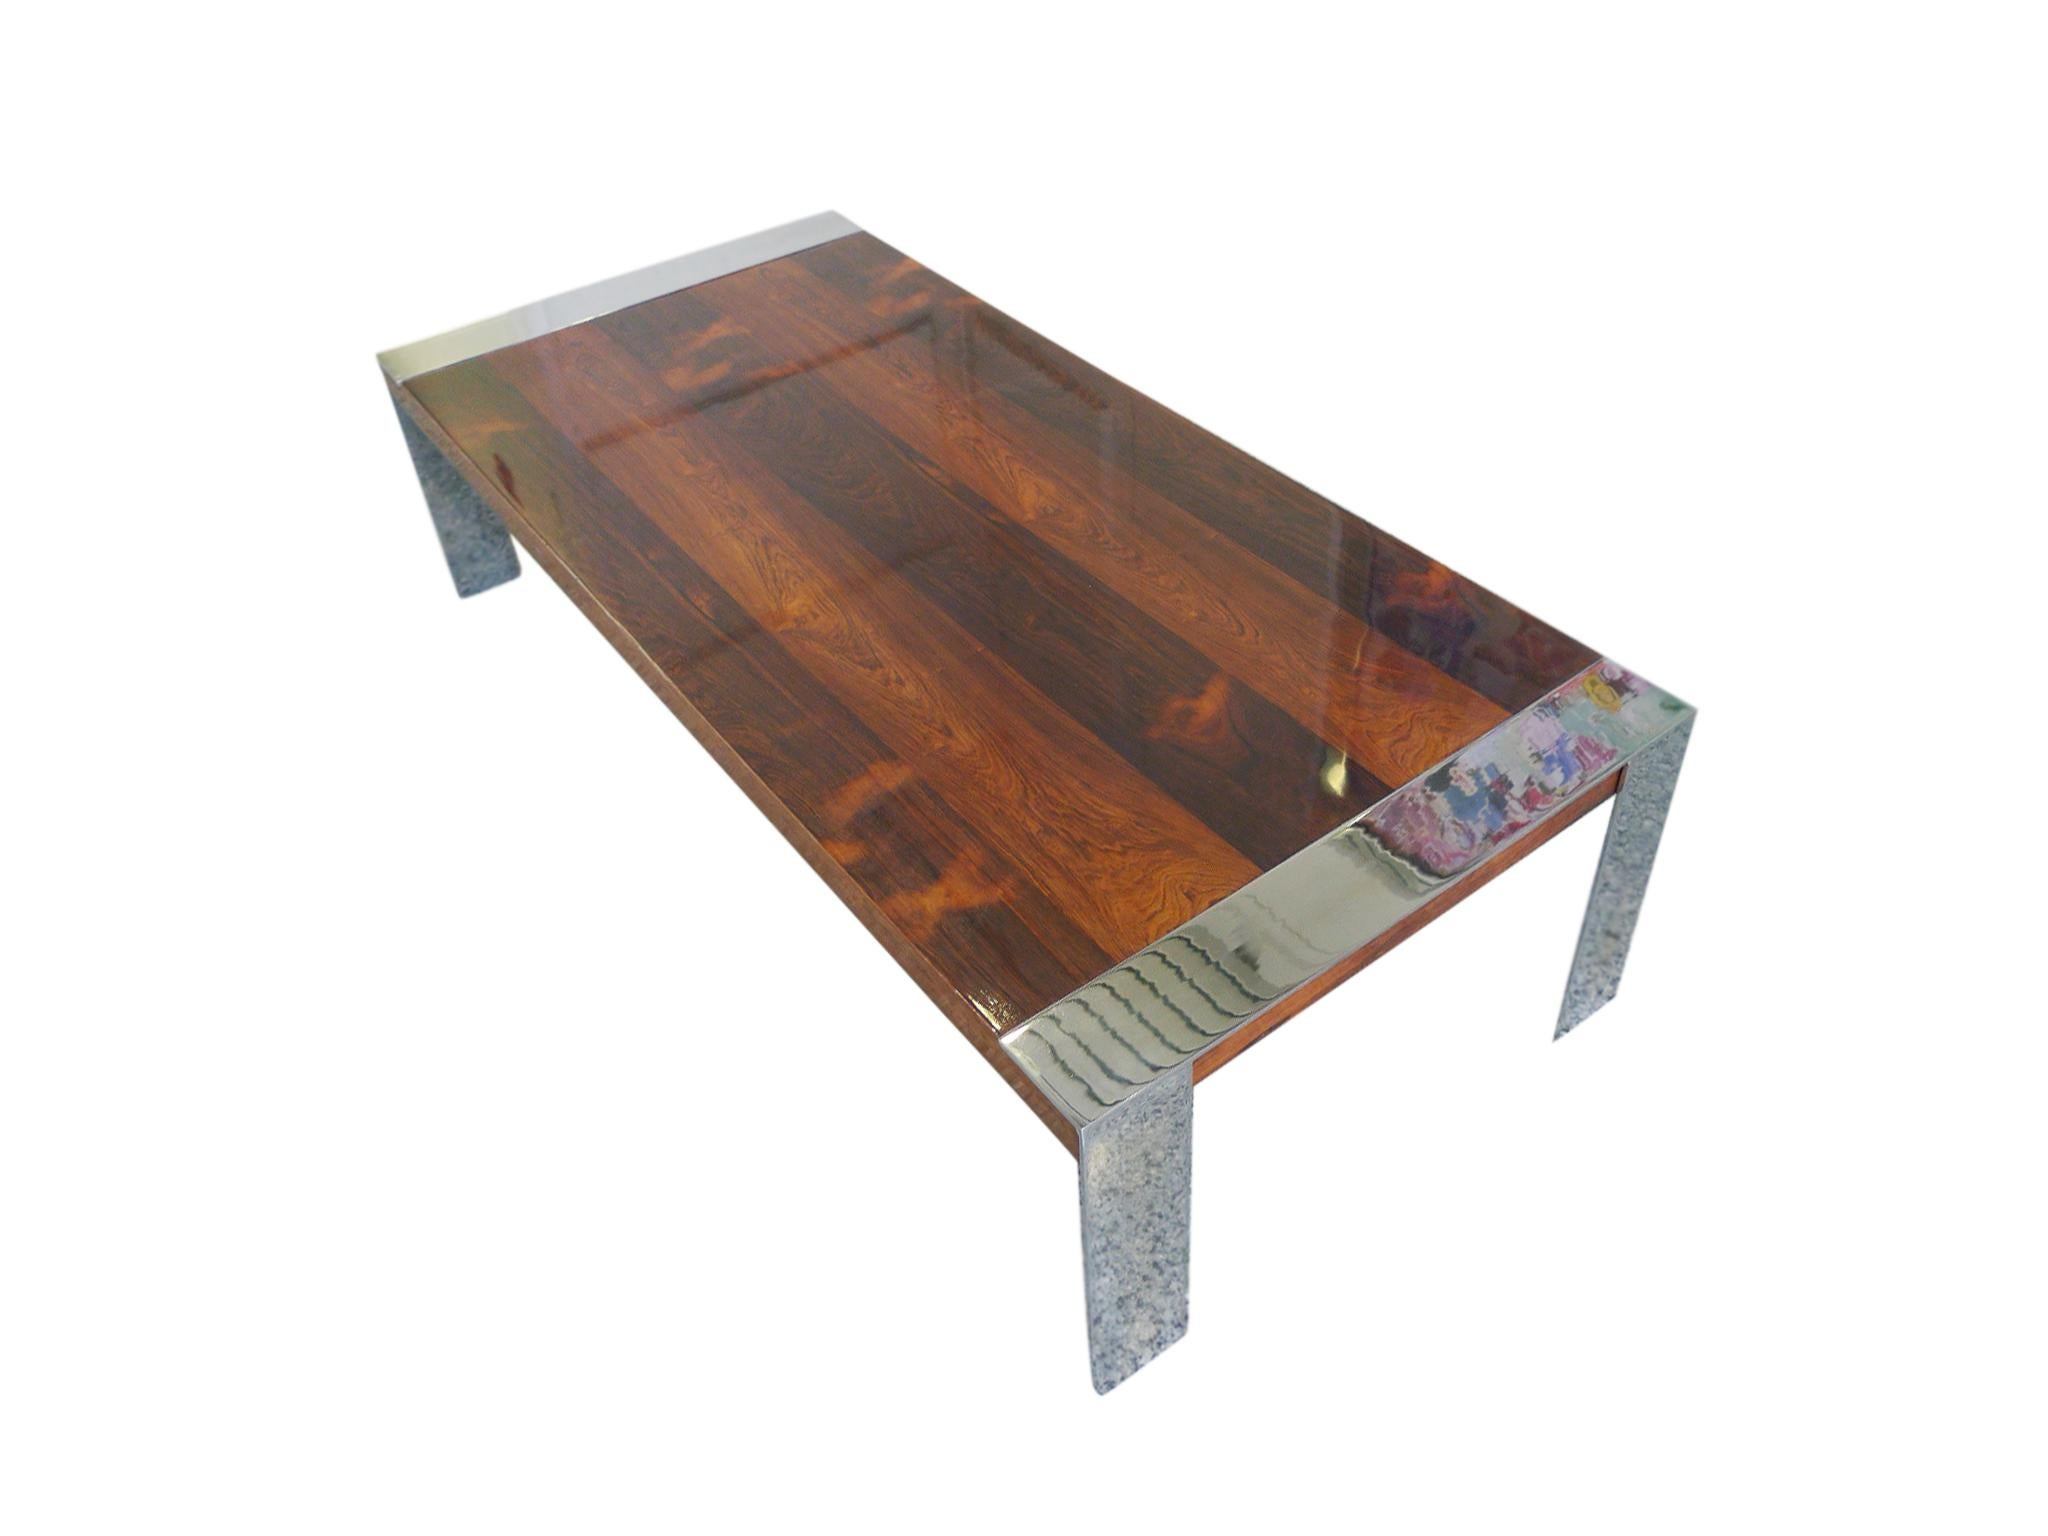 This Milo Baughman Coffee Table Is Comprised Of A Rosewood Tabletop And  Chrome Legs. The